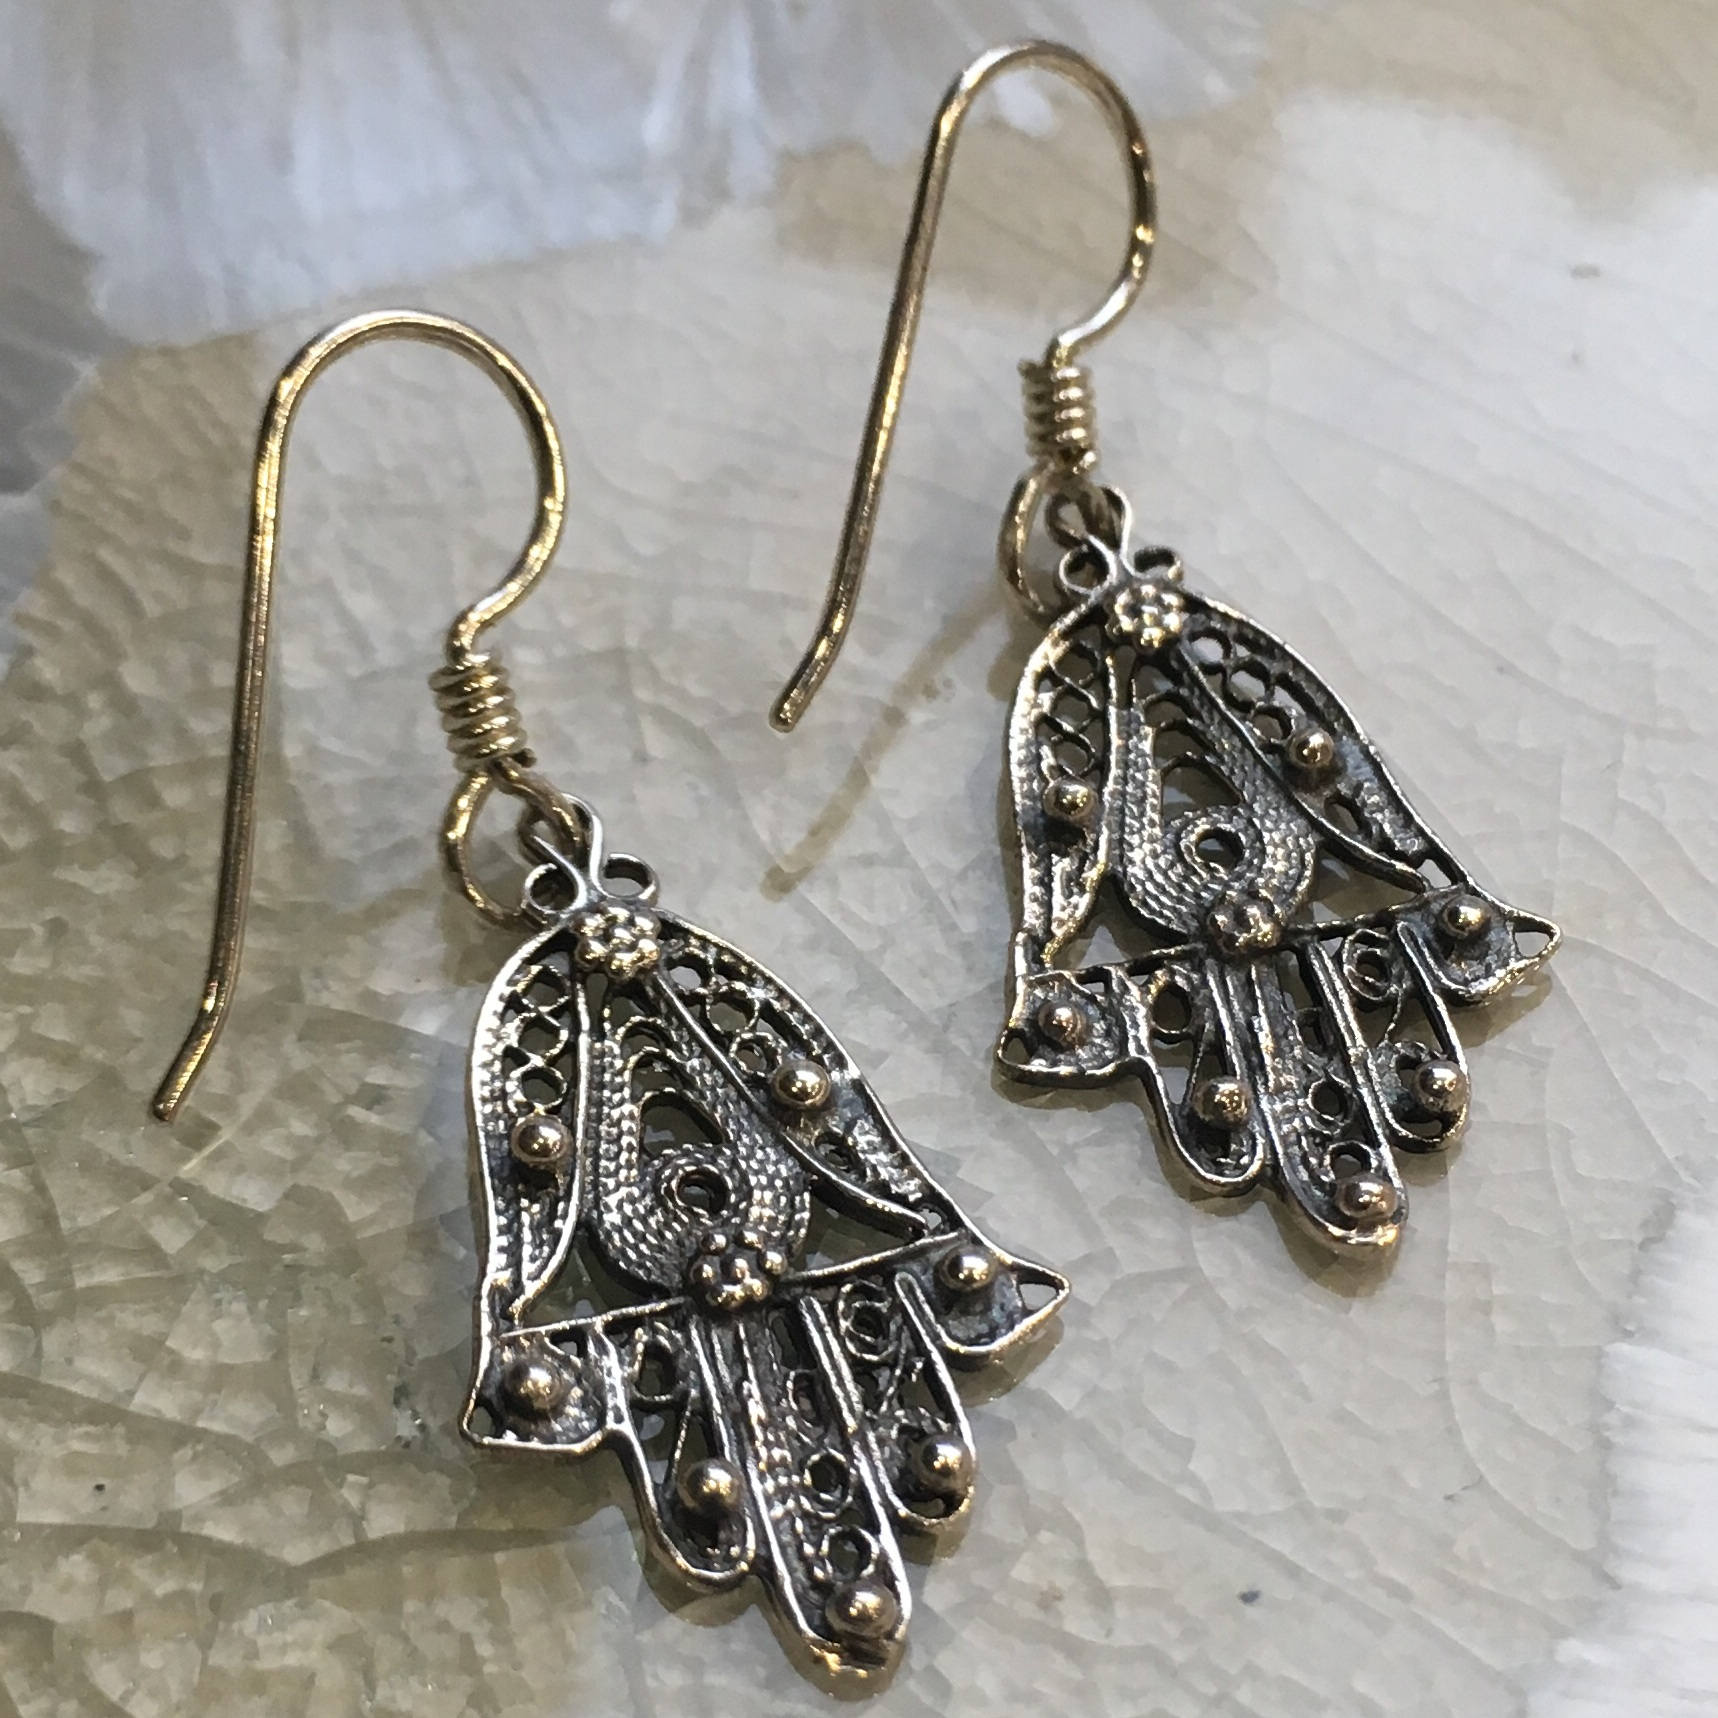 Hamsa hand Earrings, drop earrings, Sterling silver Earrings, Dangle hamsa Earrings, dainty earrings, filigree hamsa earrings - E8078S